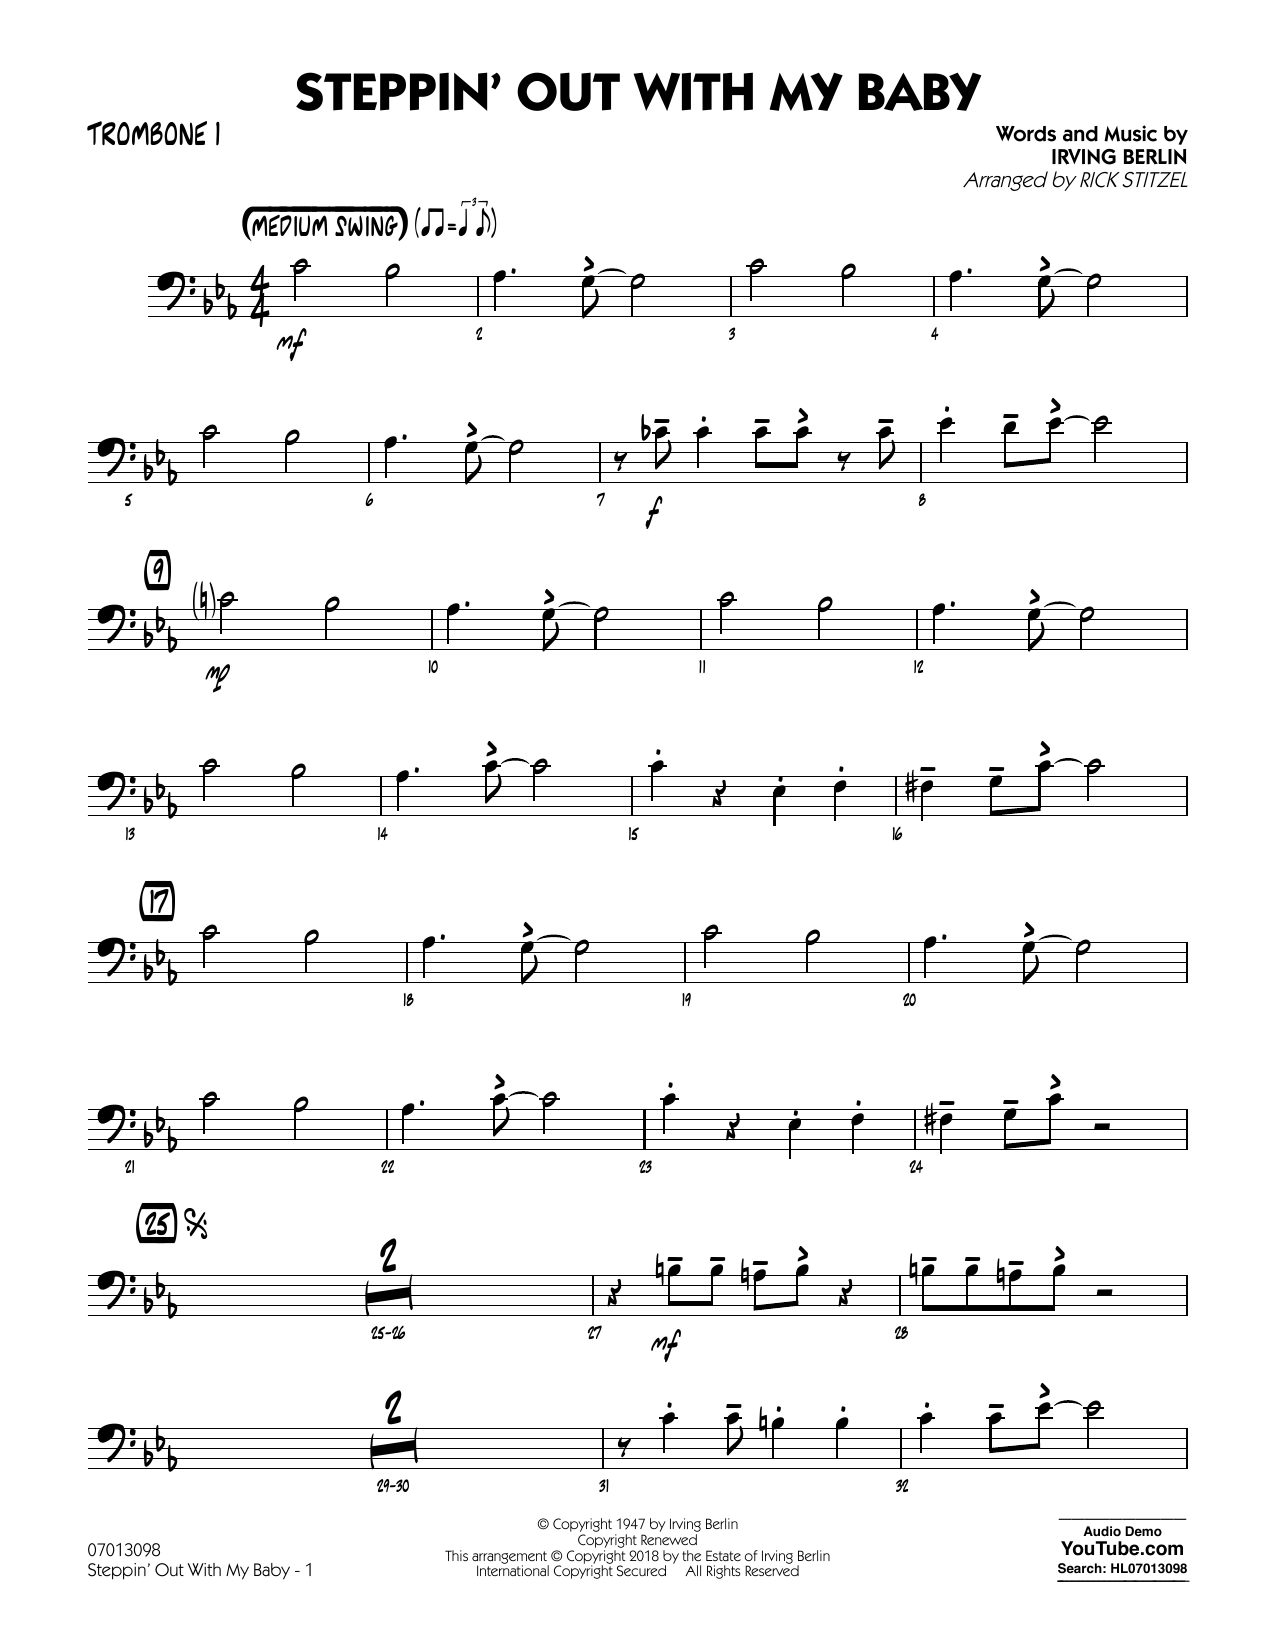 Rick Stitzel Steppin' Out with My Baby - Trombone 1 sheet music notes and chords. Download Printable PDF.